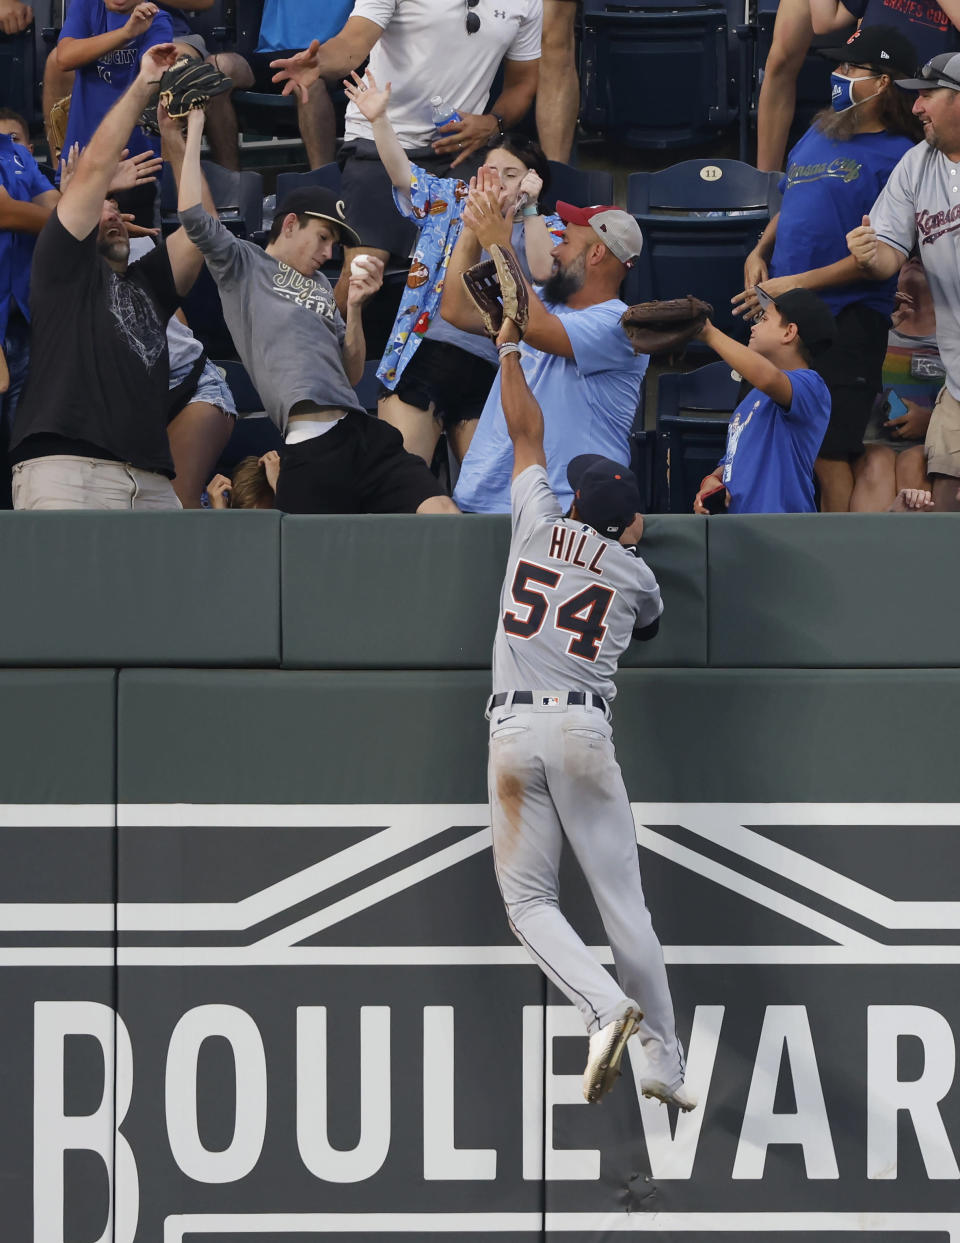 Detroit Tigers center fielder Derek Hill (54) goes up the wall in an attempt to grab a three-run home run hit by Kansas City Royals' Ryan O'Hearn during the fourth inning of a baseball game at Kauffman Stadium in Kansas City, Mo., Friday, July 23, 2021. (AP Photo/Colin E. Braley)